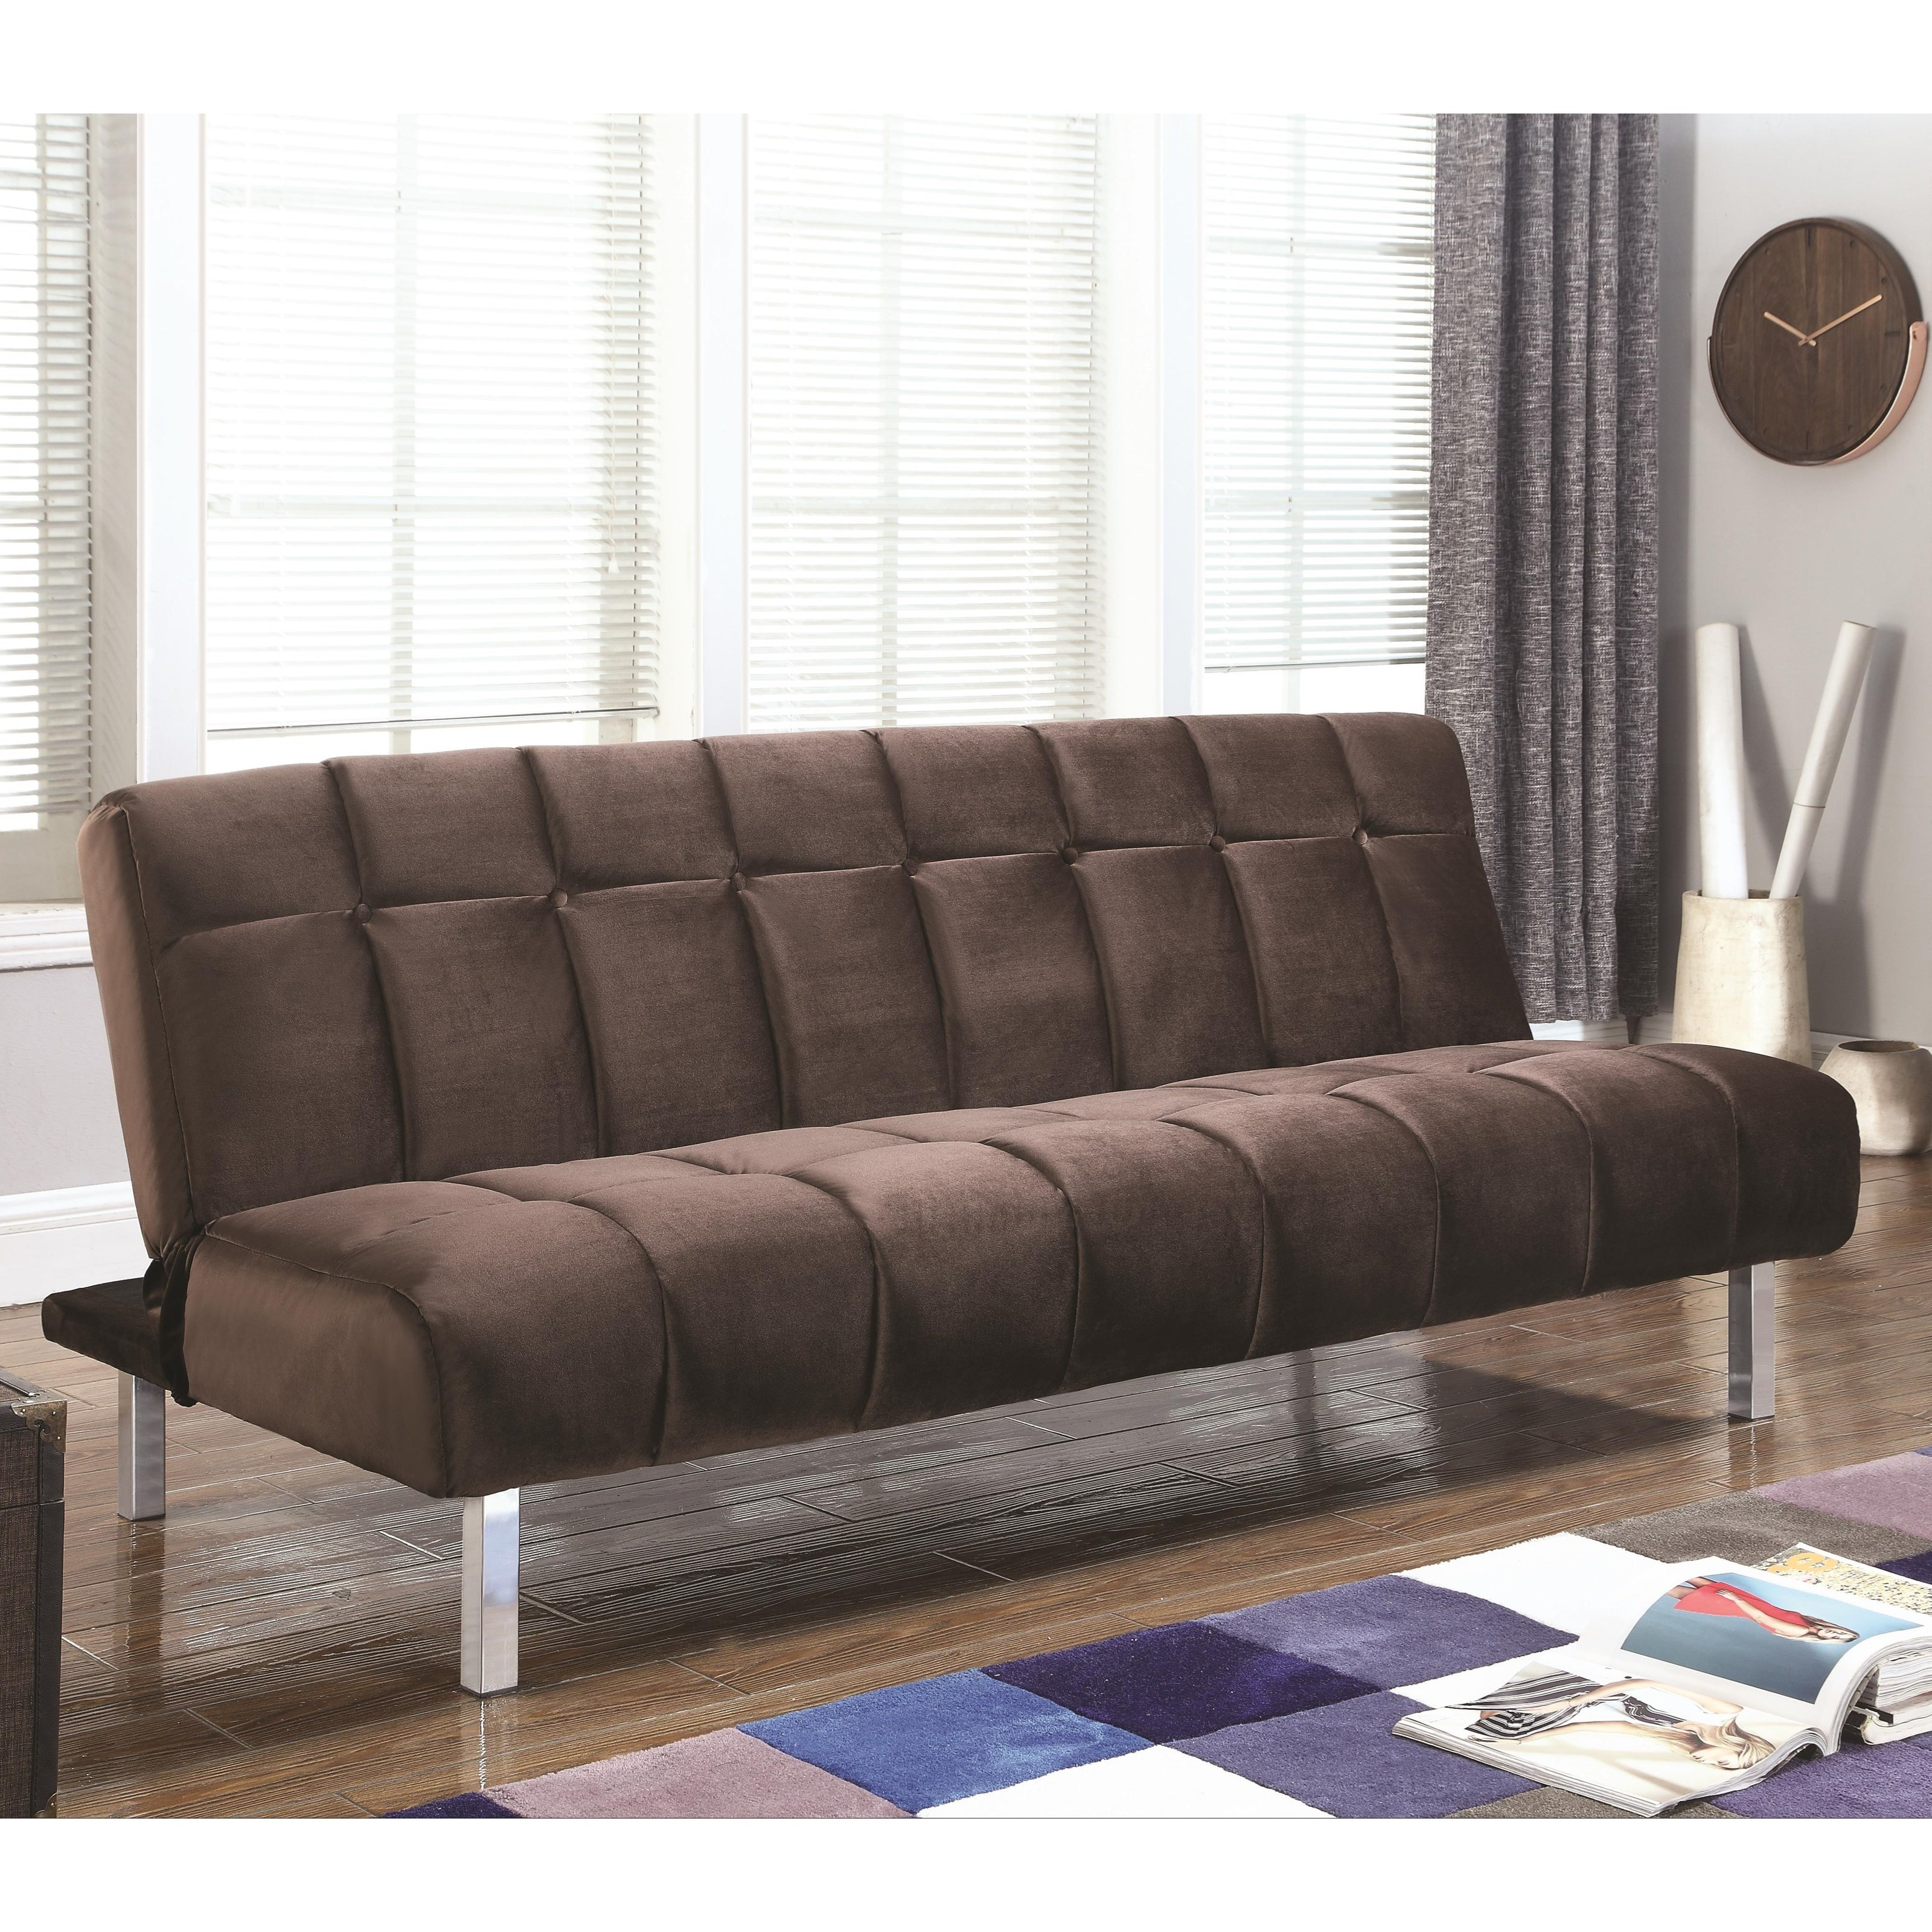 Designer Futons: Coaster Sofa Beds And Futons Contemporary Sofa Bed With